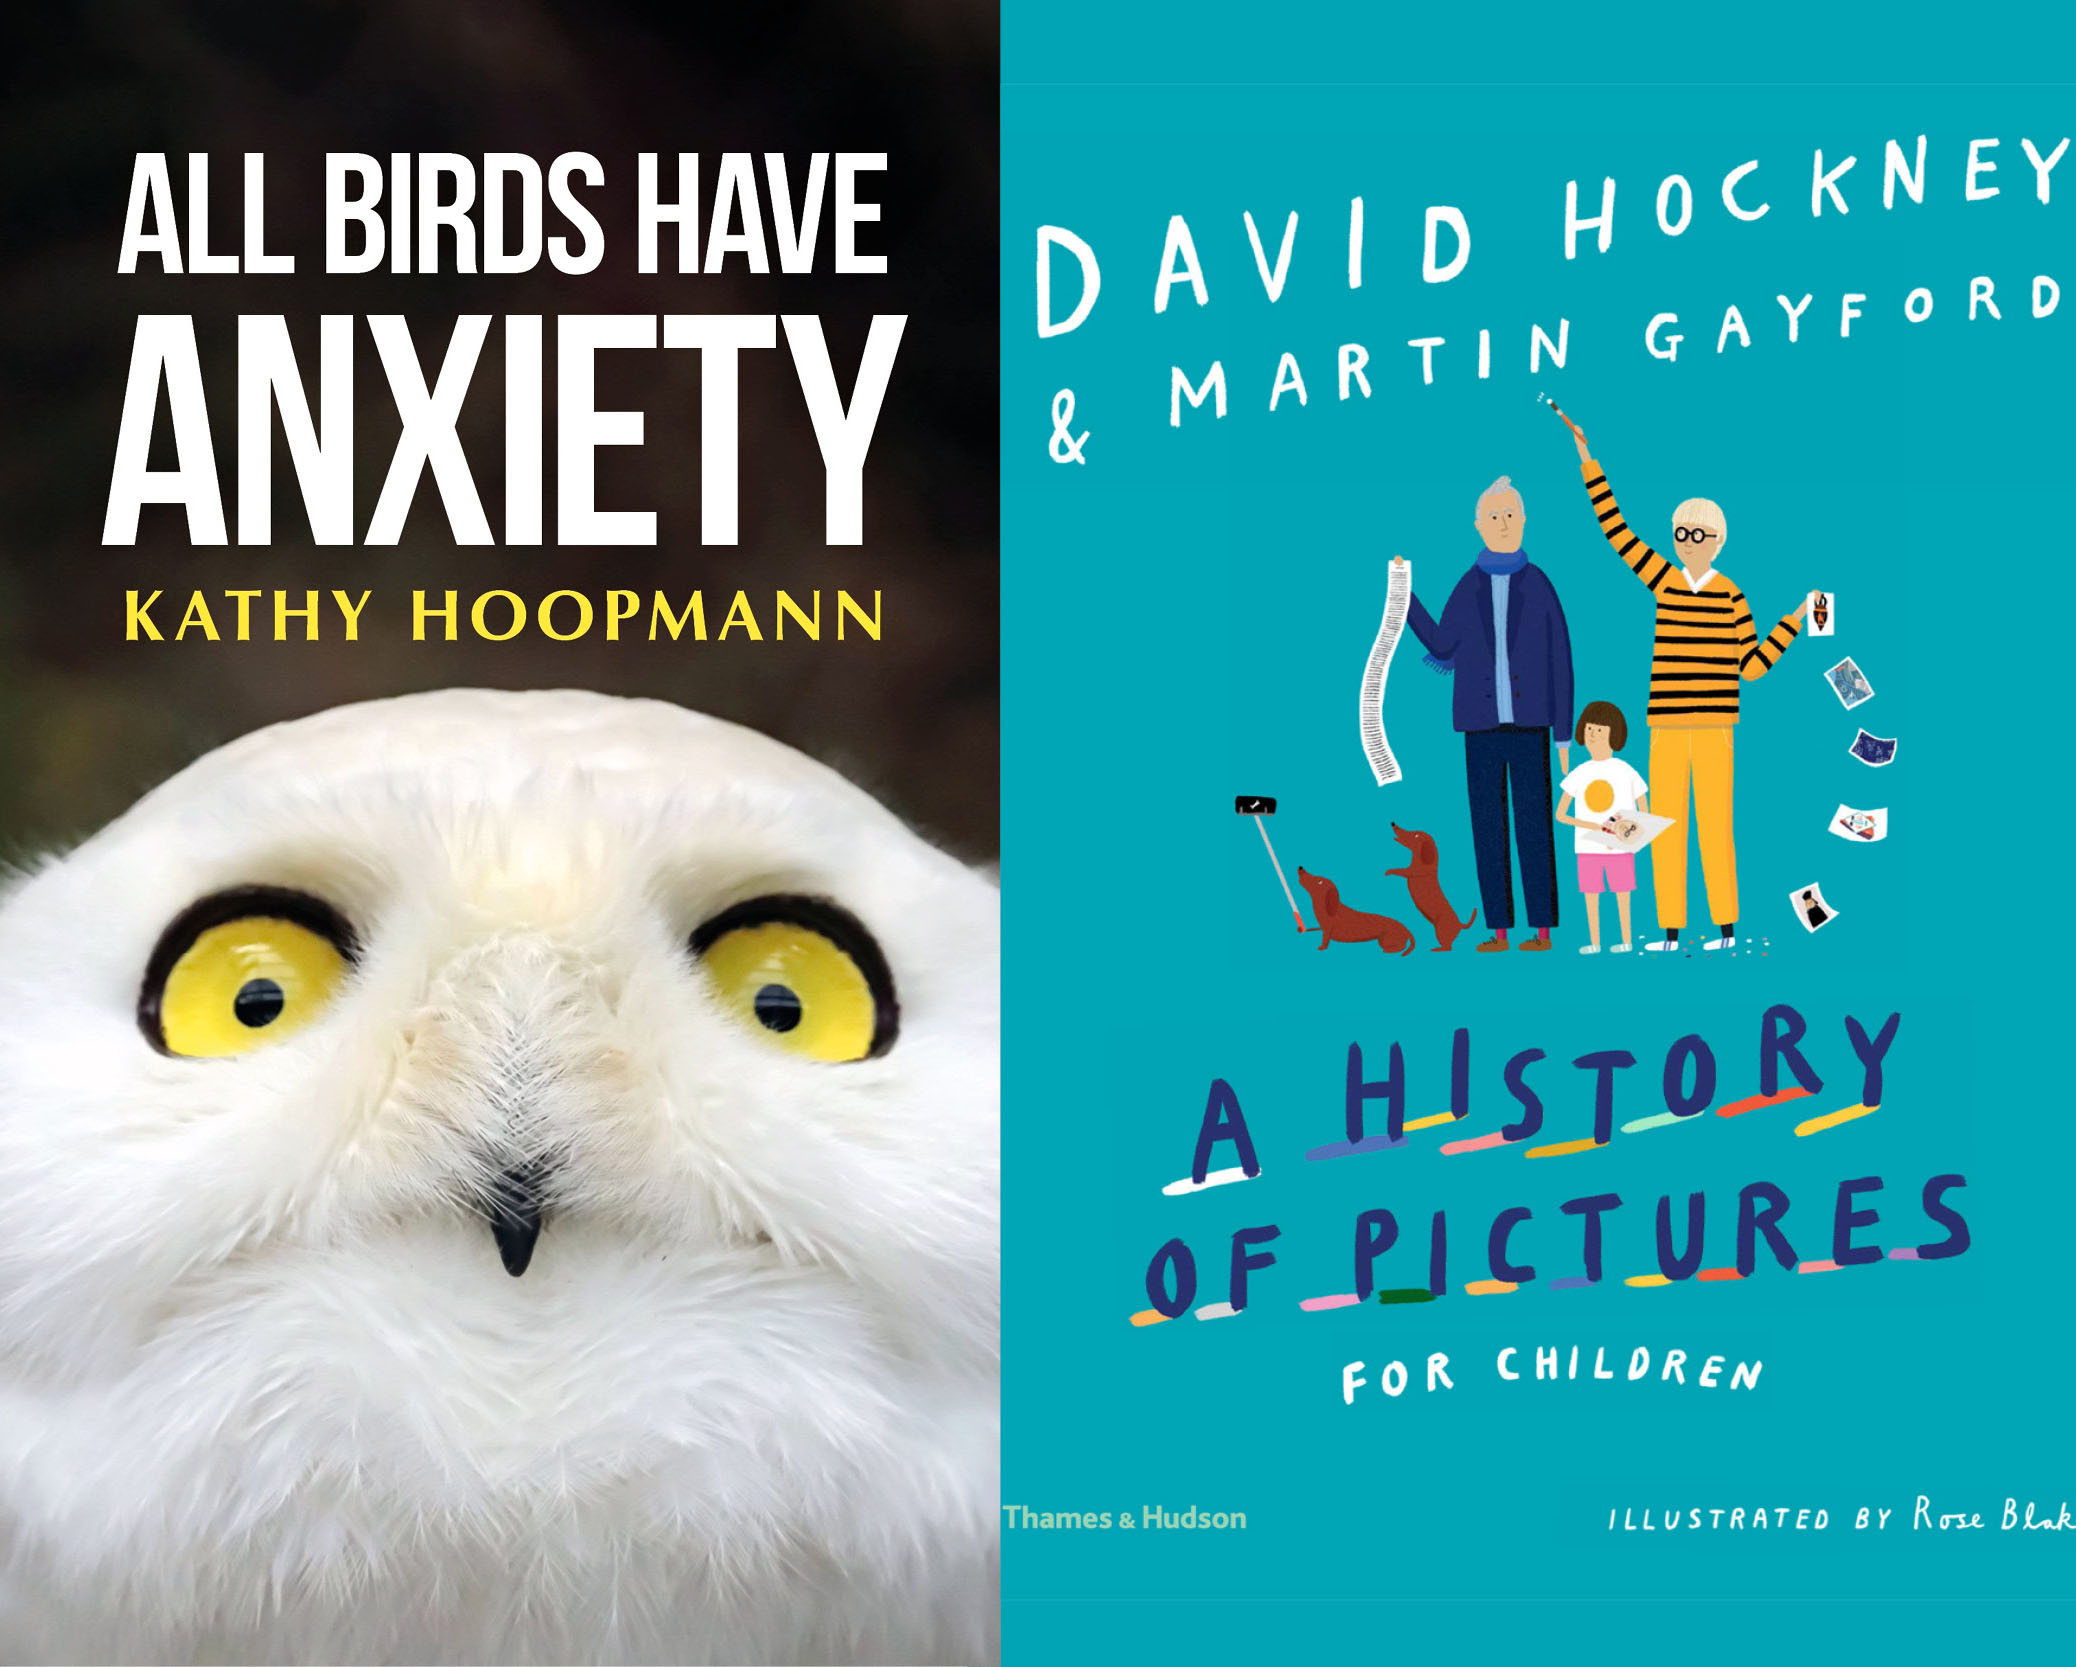 From Art to Anxiety: the 2019 ALCS Educational Writers' Award shortlist